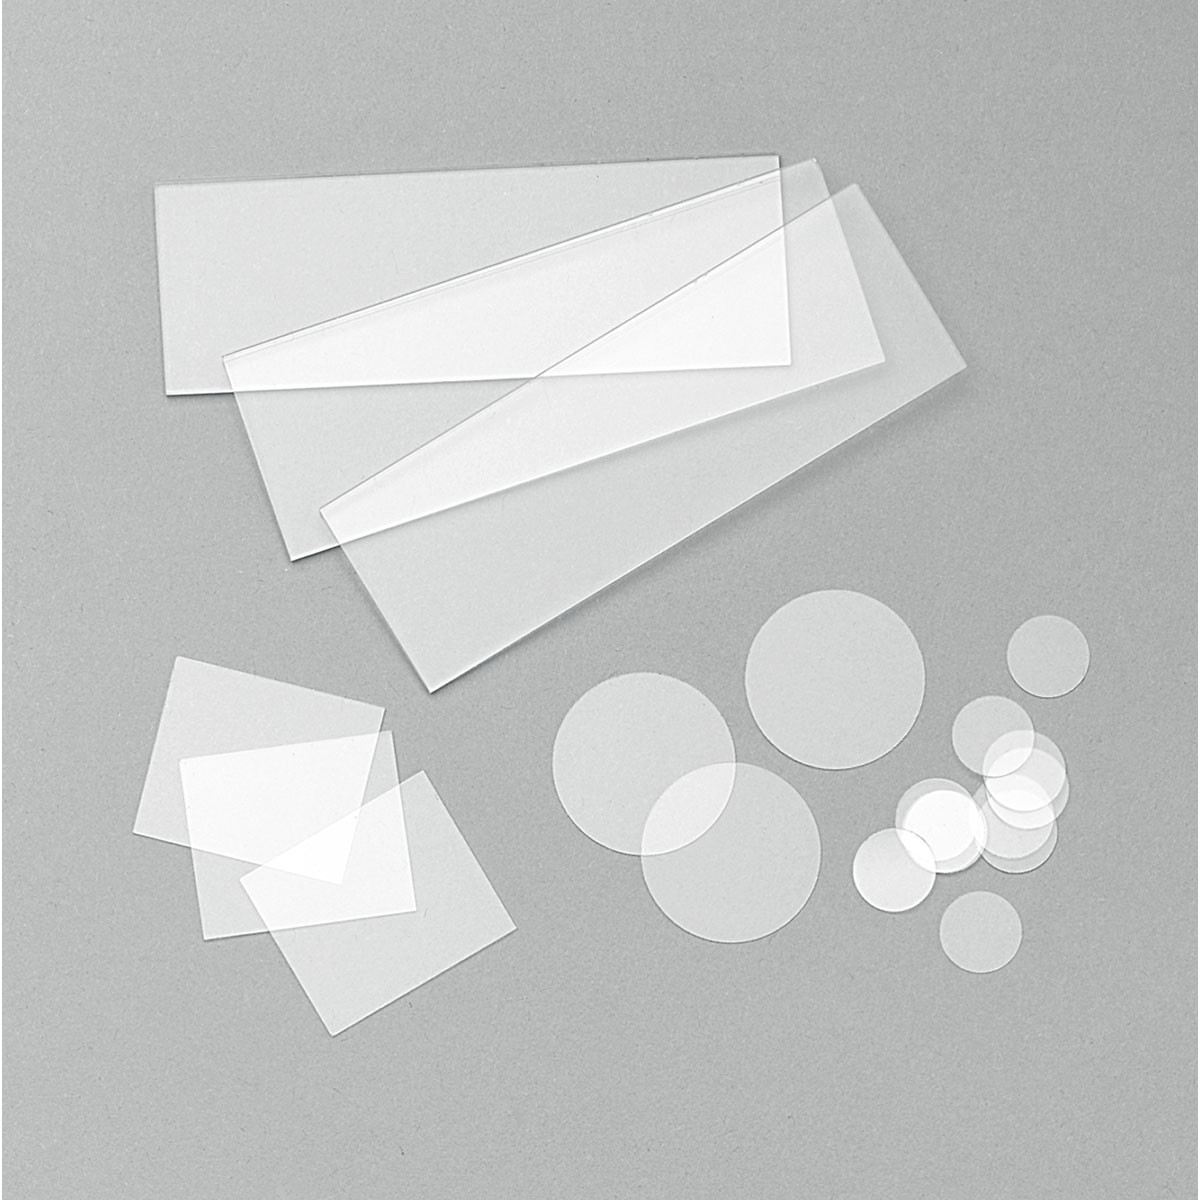 Cover Slips No. 1 22x50mm (100/ pack)